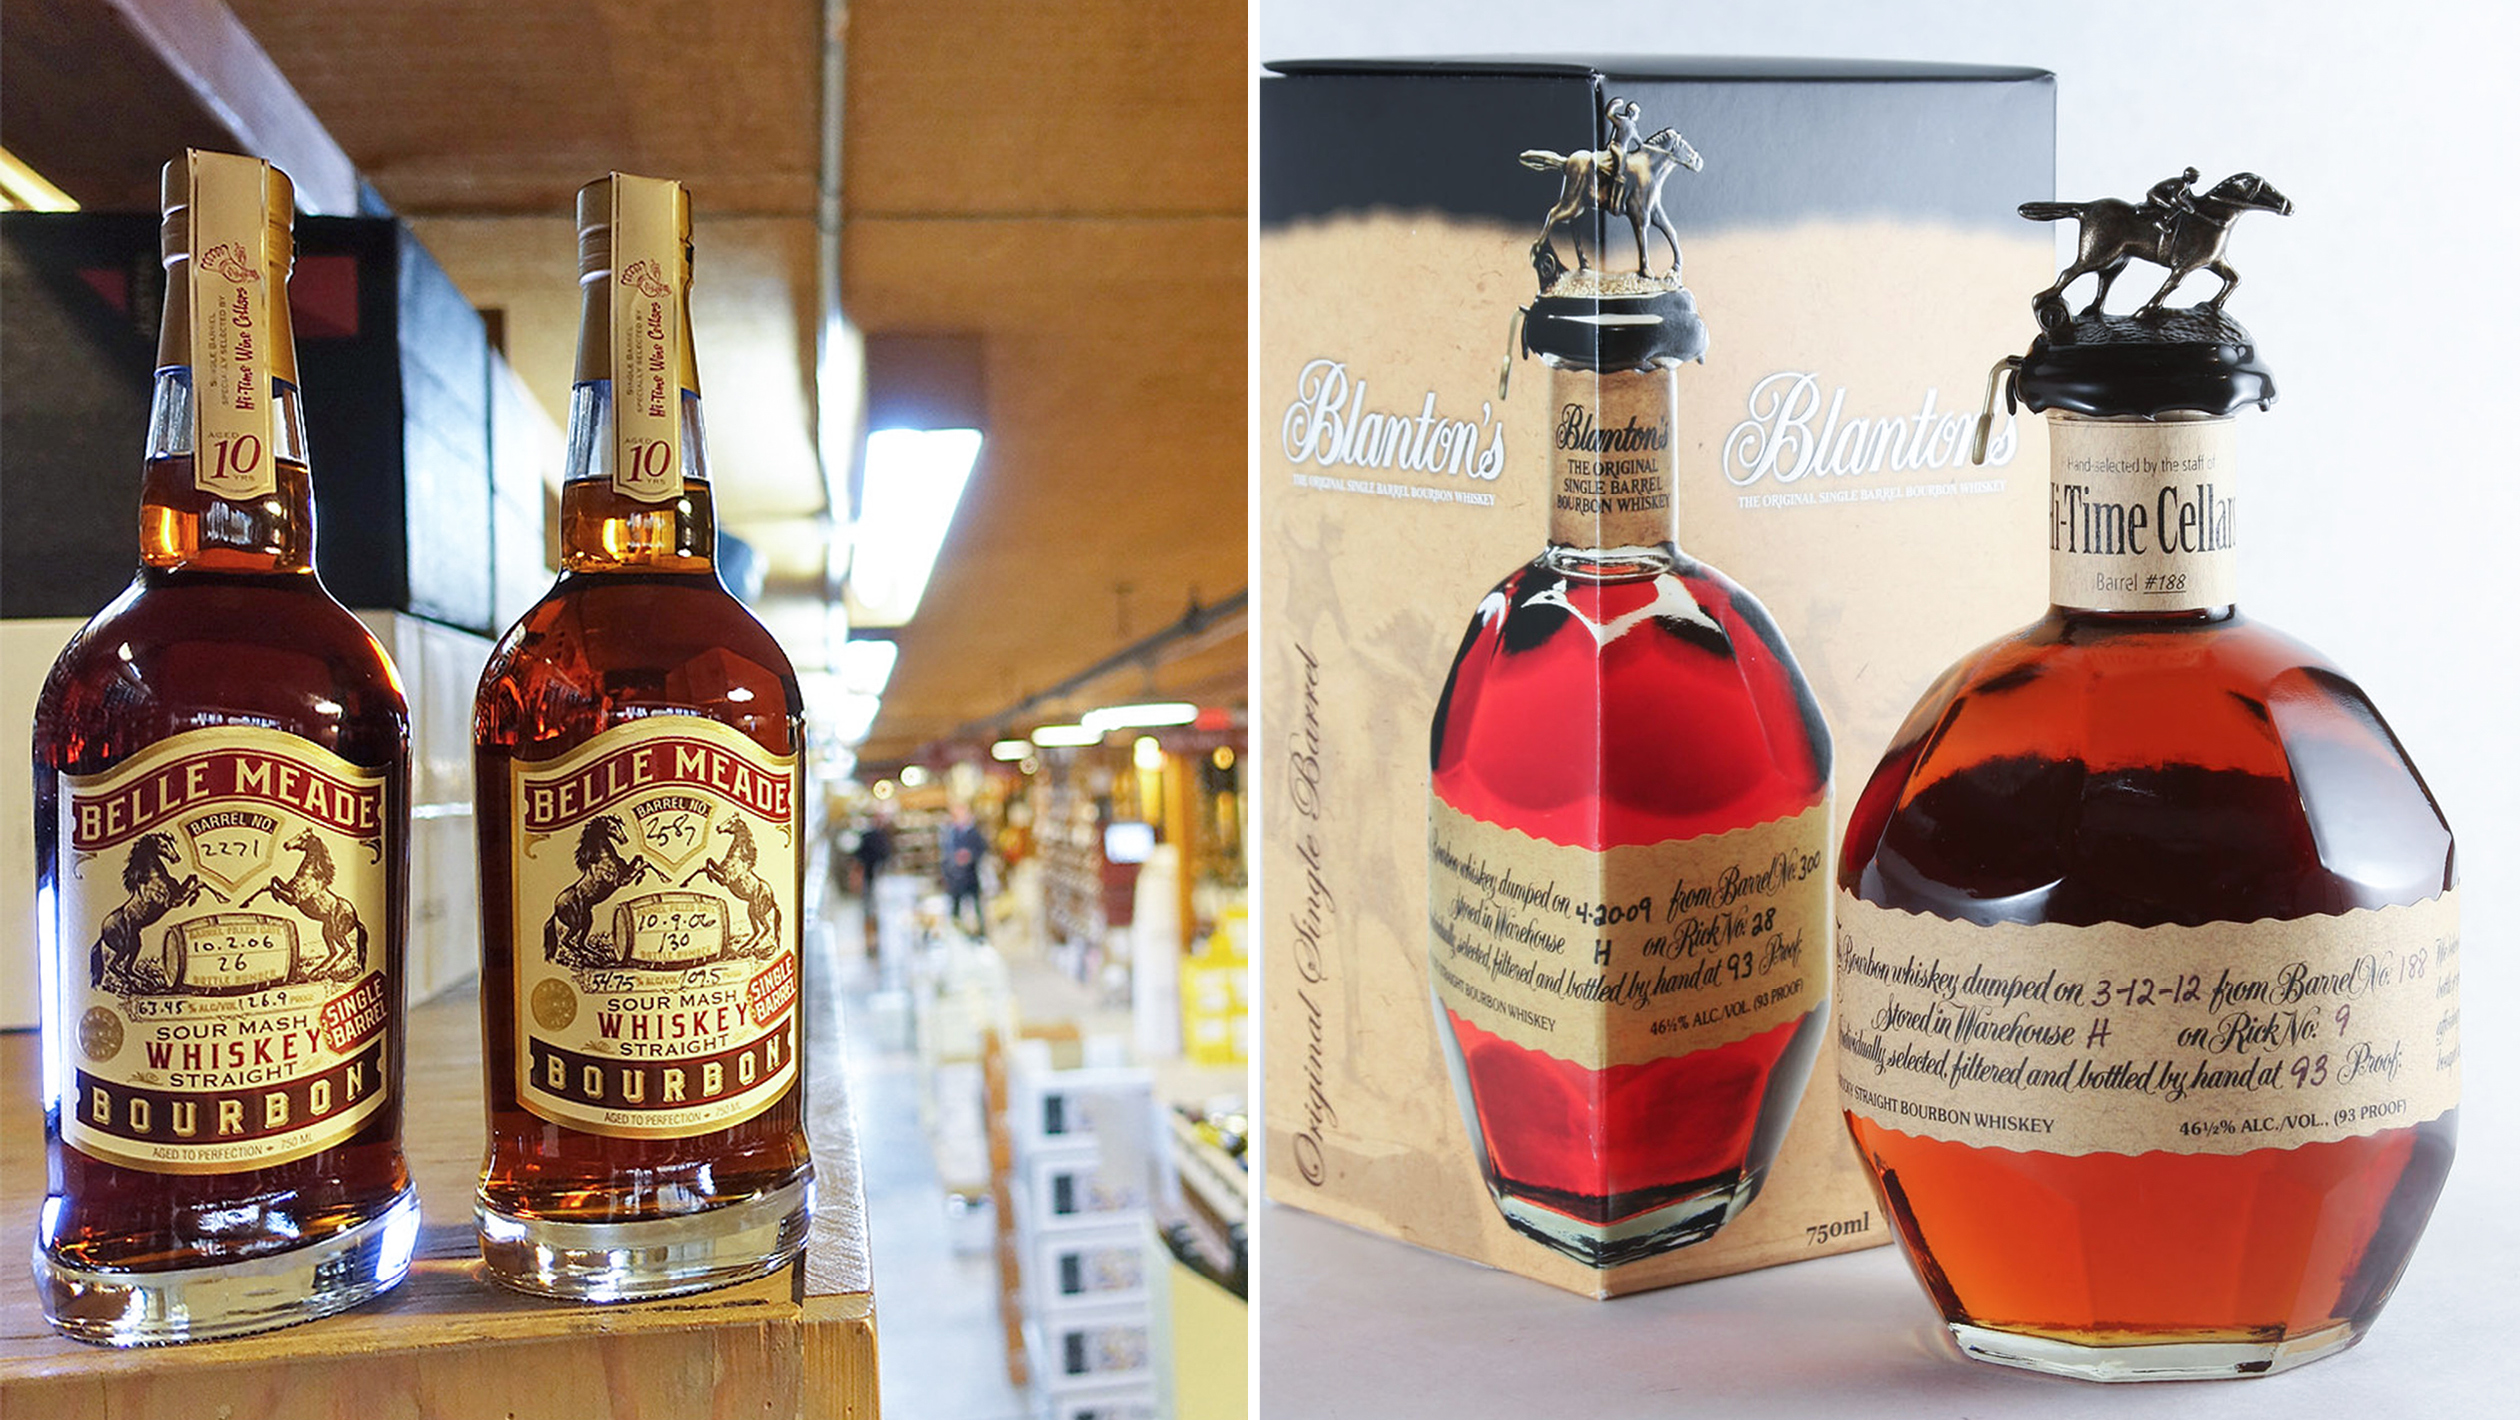 Collage of private label liquor bottles